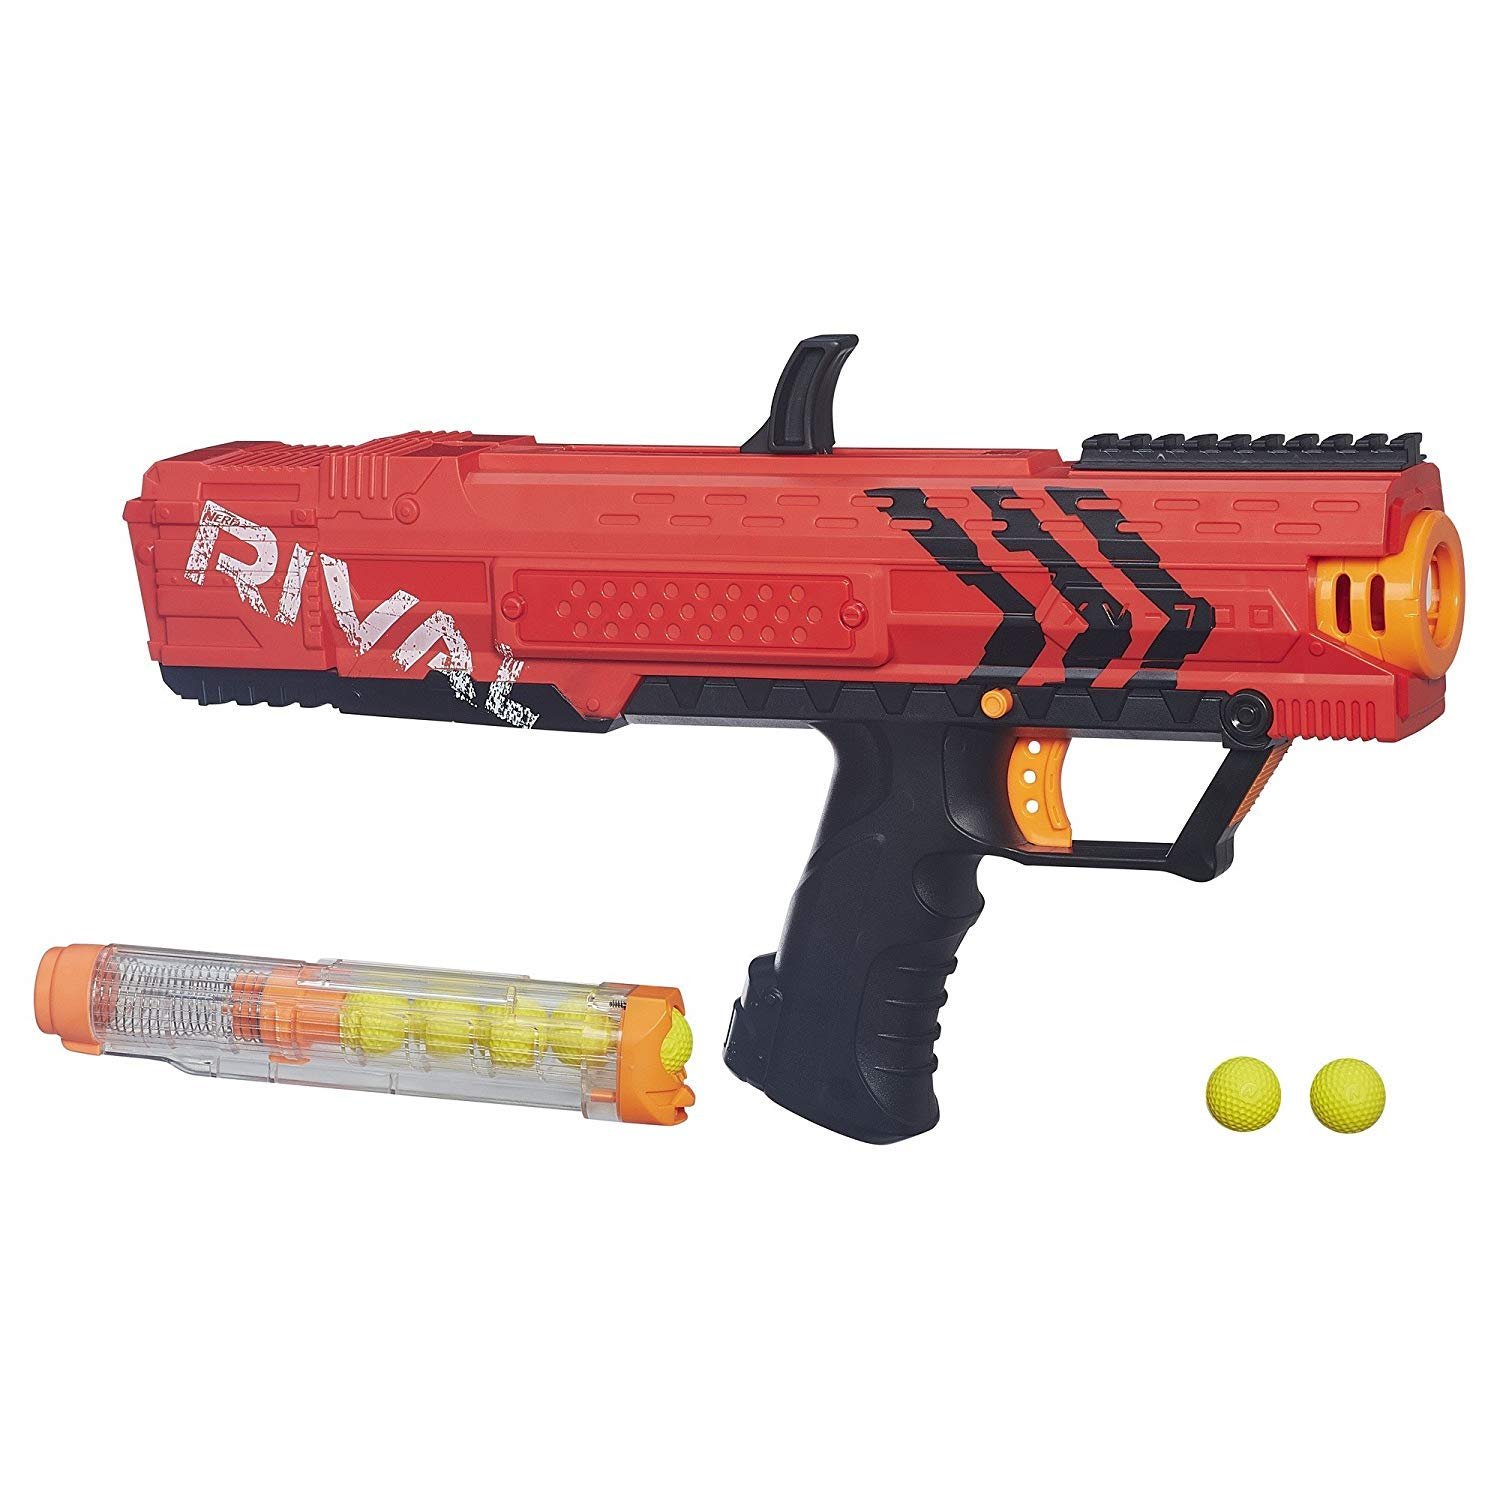 NERF Rival Apollo XV 700 Red/Blue with 2-100 Packs of Ammo - Bundle by NERF (Image #3)